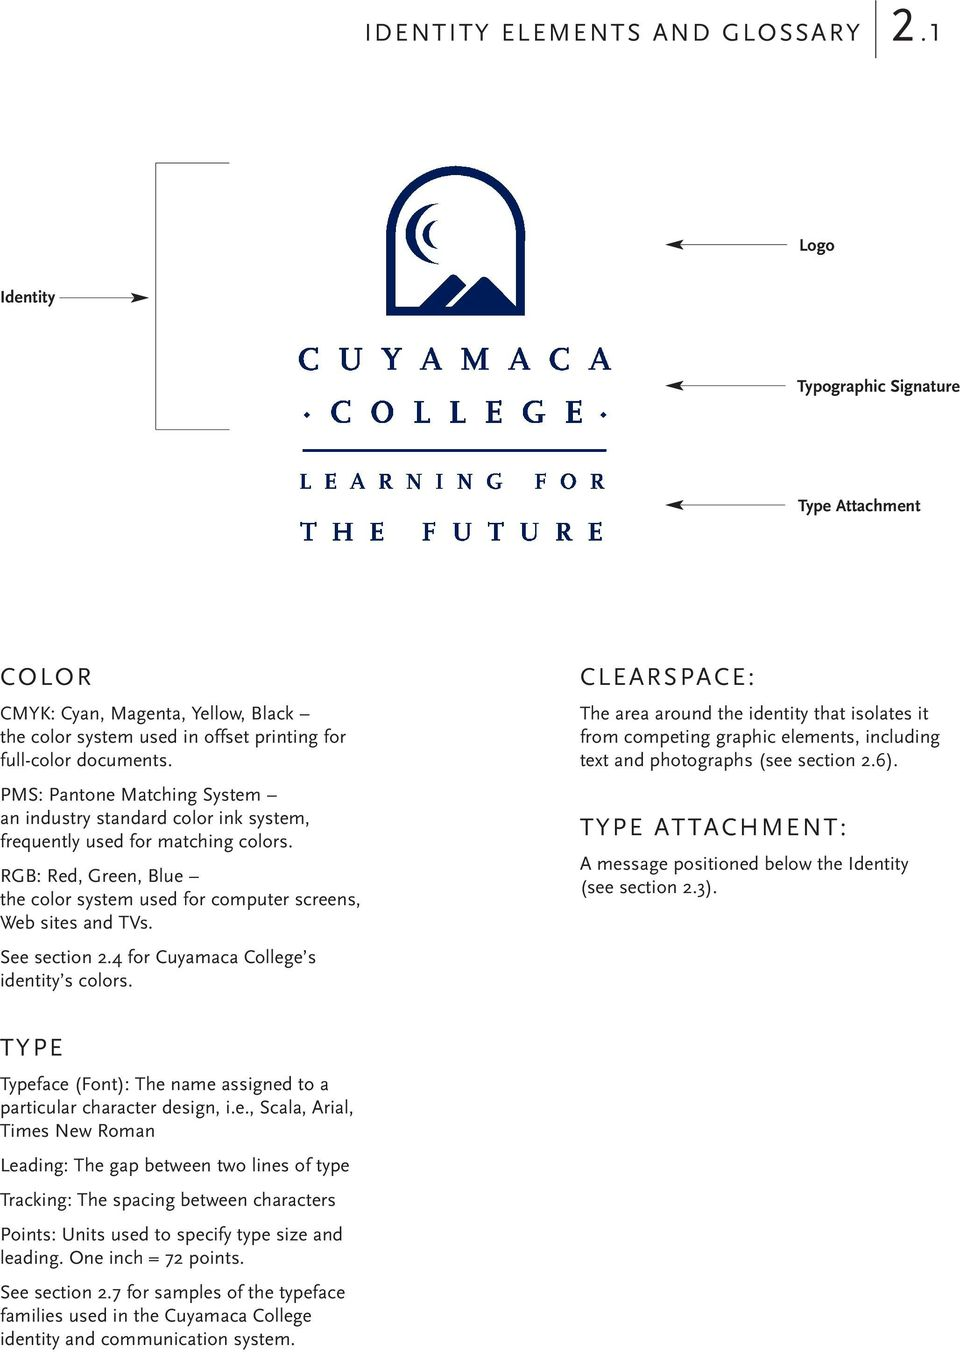 See section 2.4 for Cuyamaca College s identity s colors. CLEARSPACE: The area around the identity that isolates it from competing graphic elements, including text and photographs (see section 2.6).